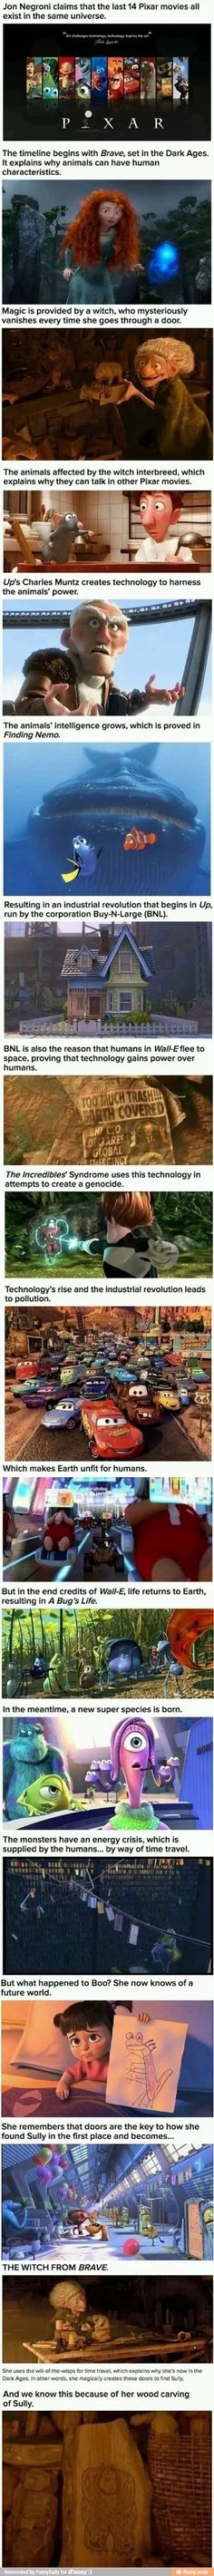 Pixar theory of Interconnected Realities